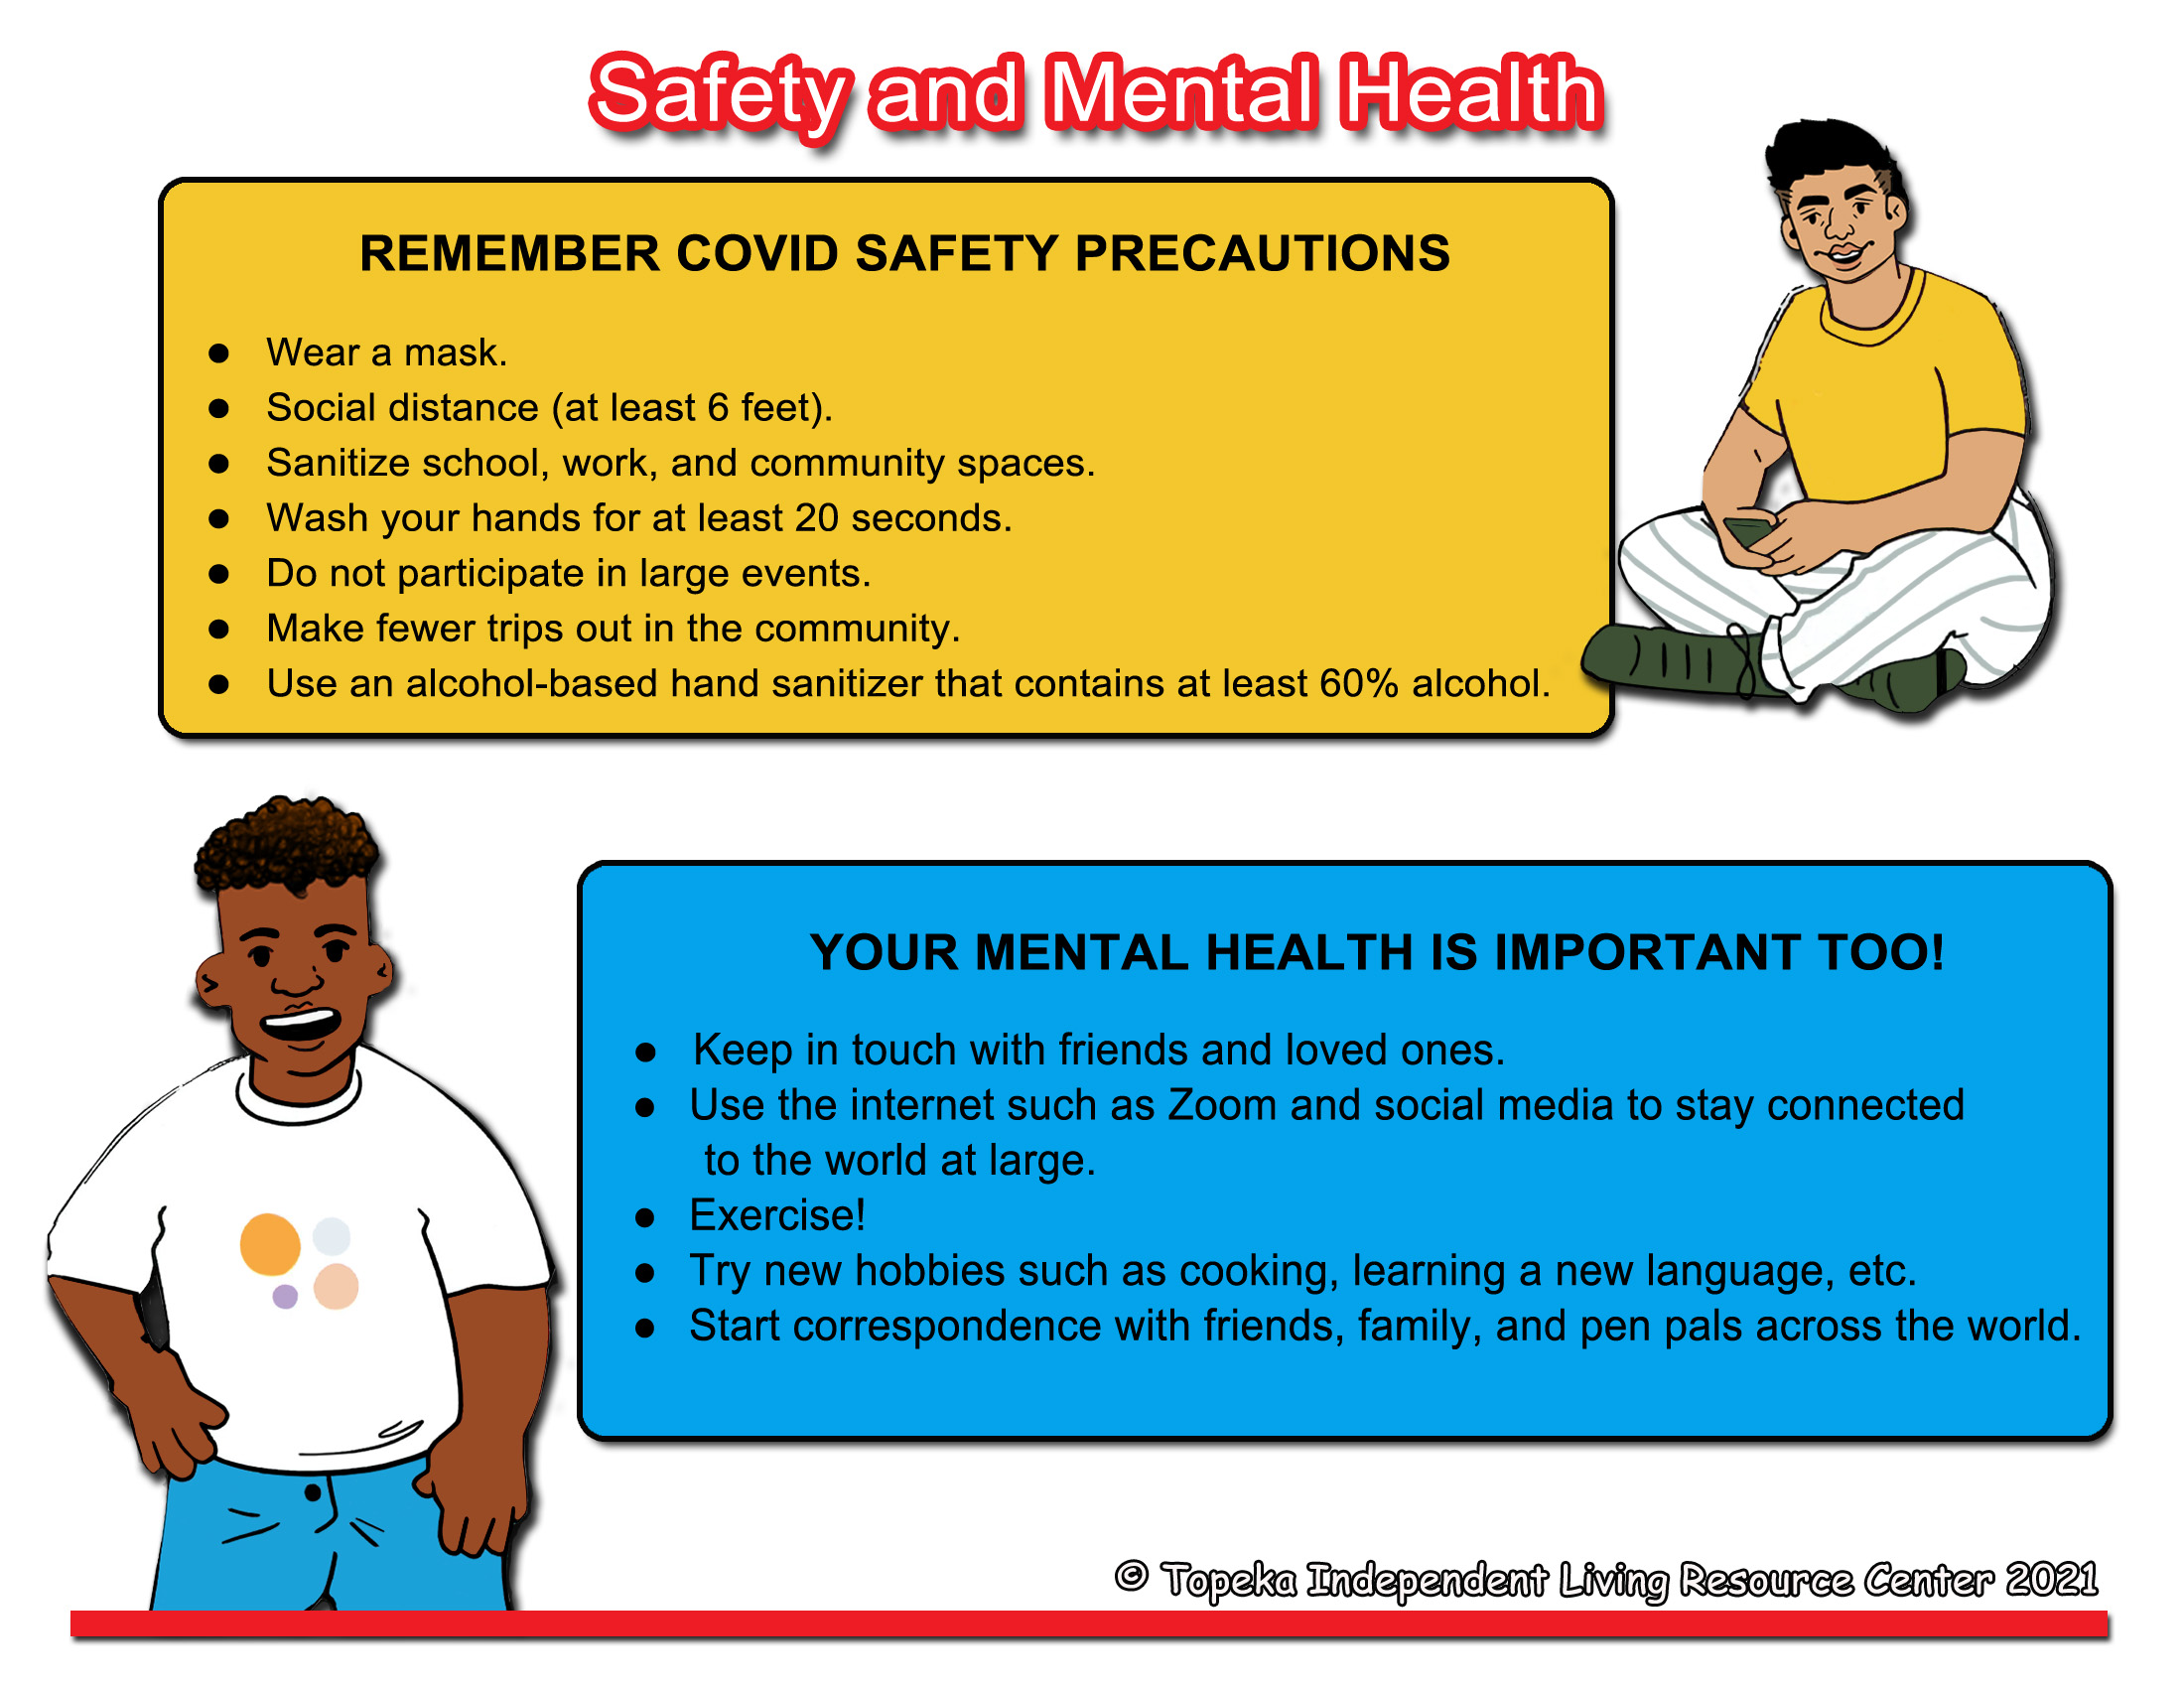 Safety and Mental Health